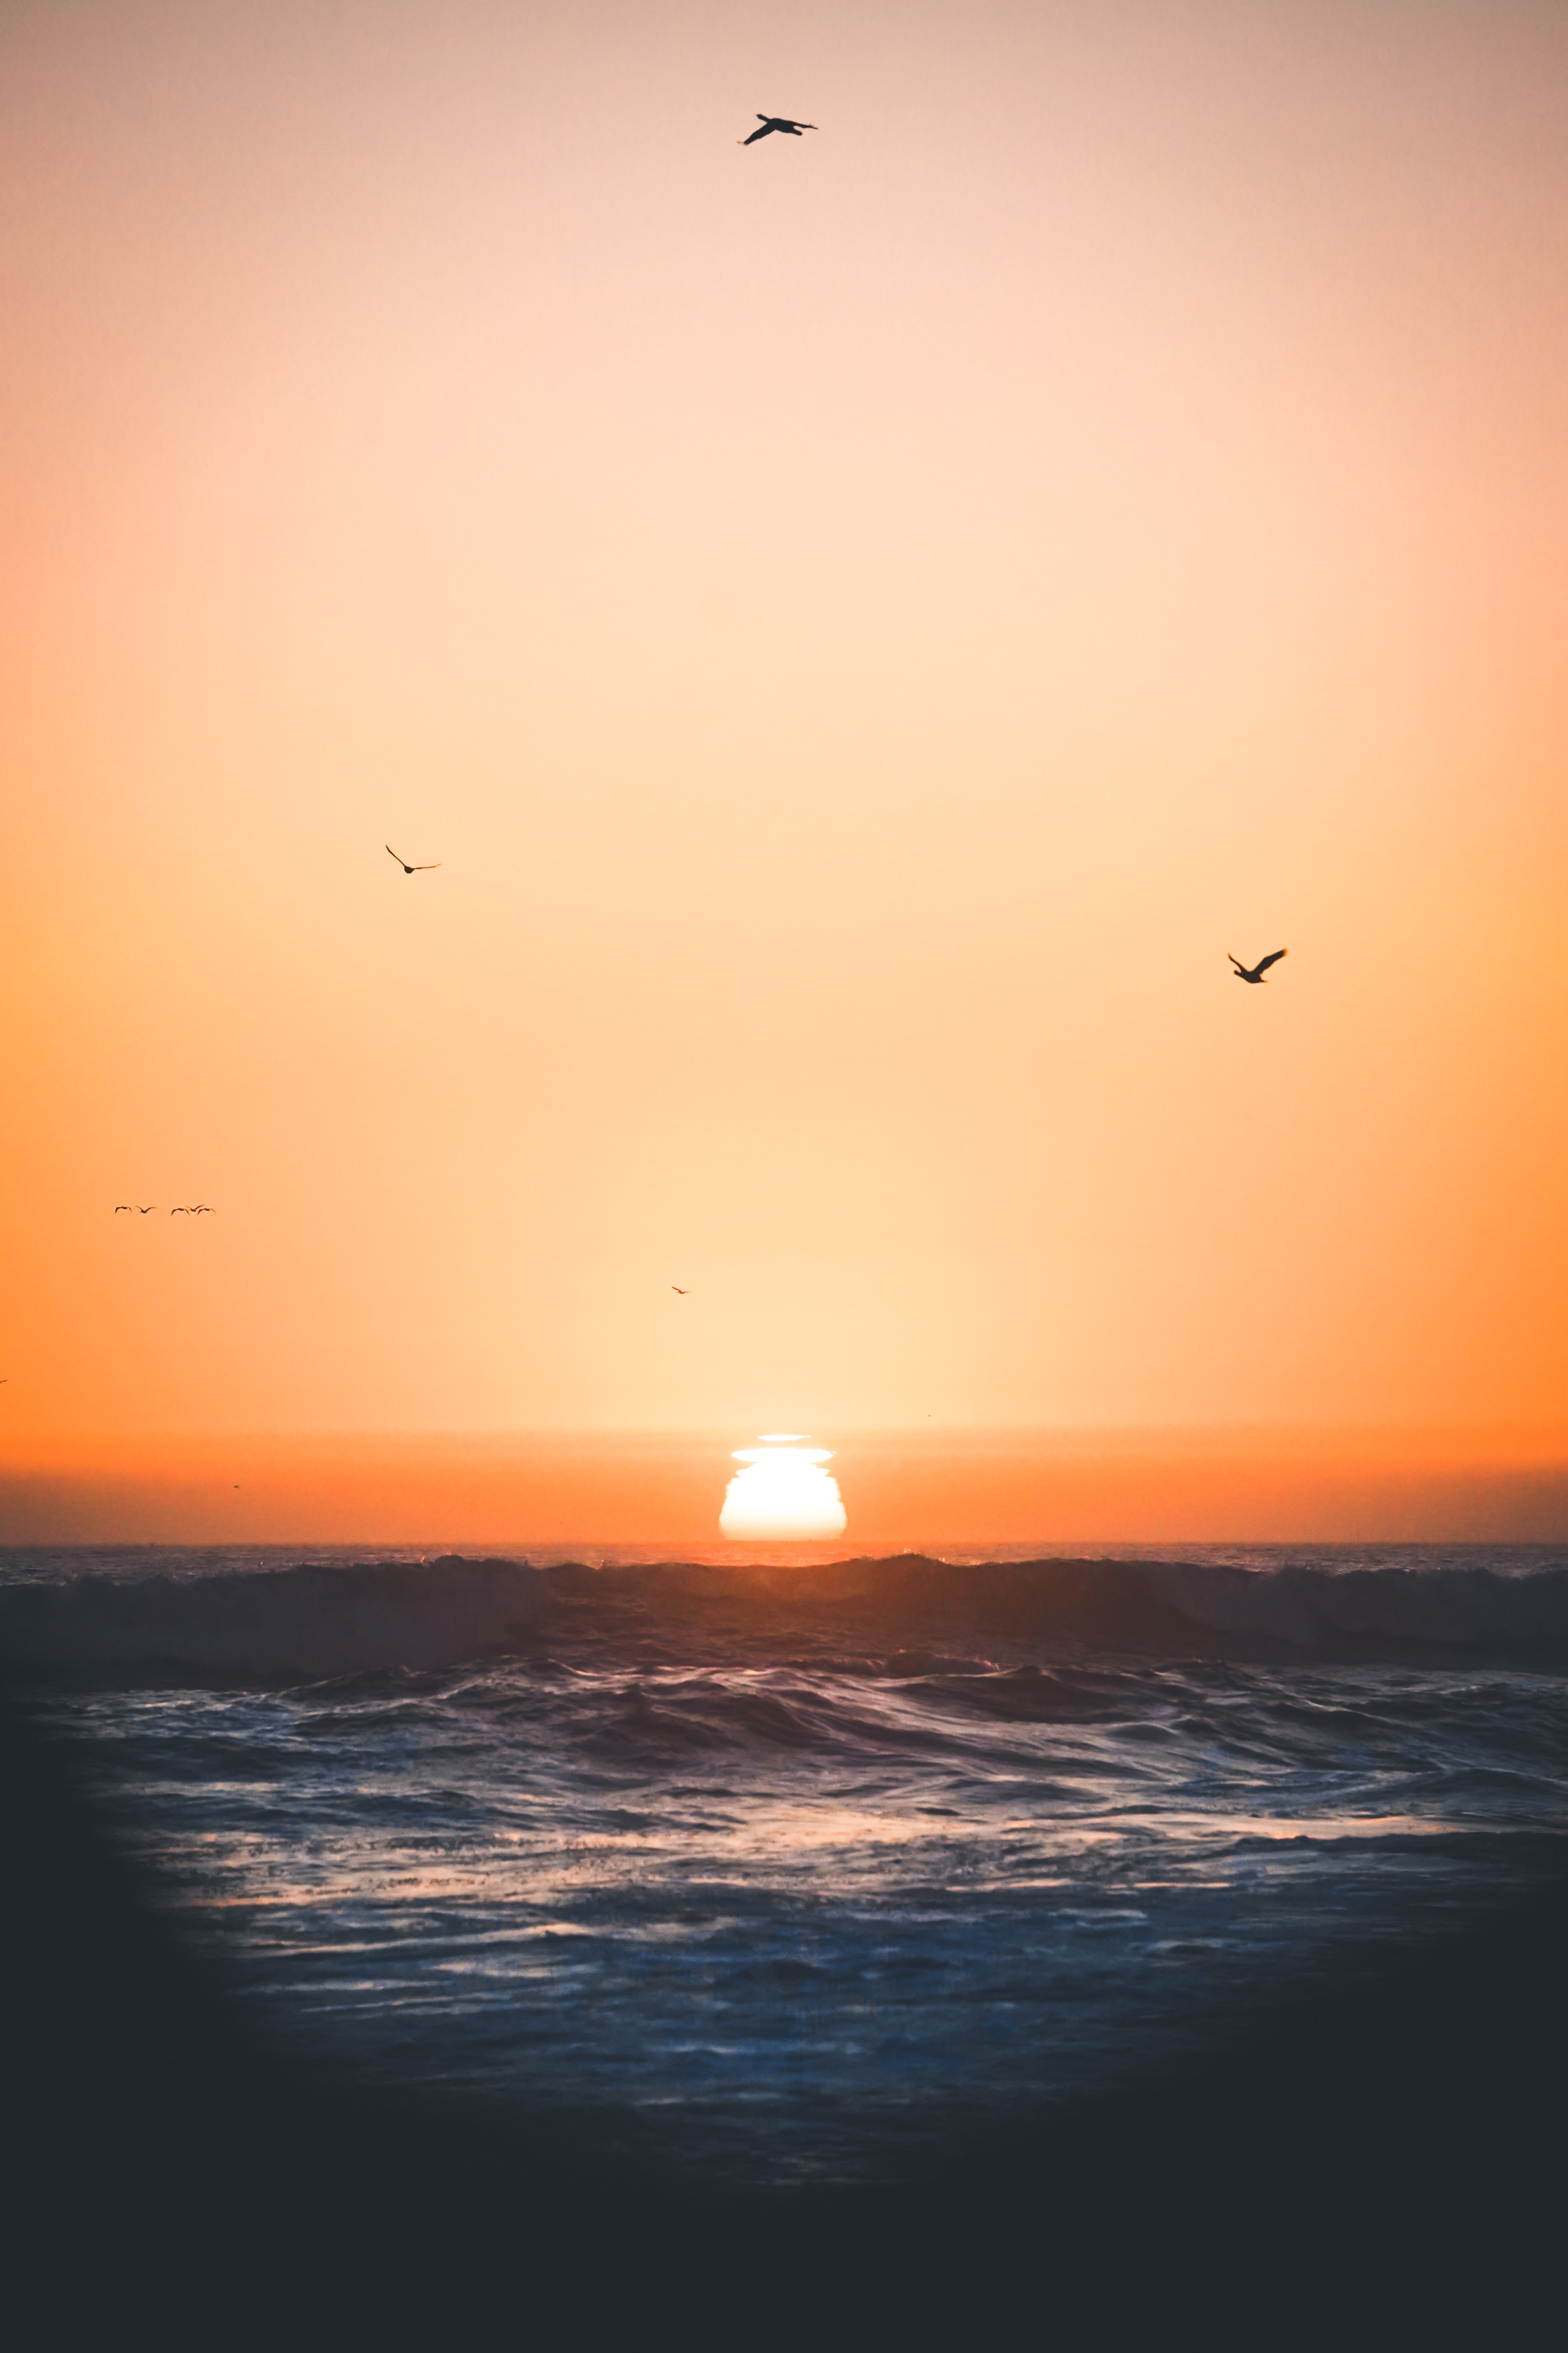 silhouette of birds flying above ocean during sunset